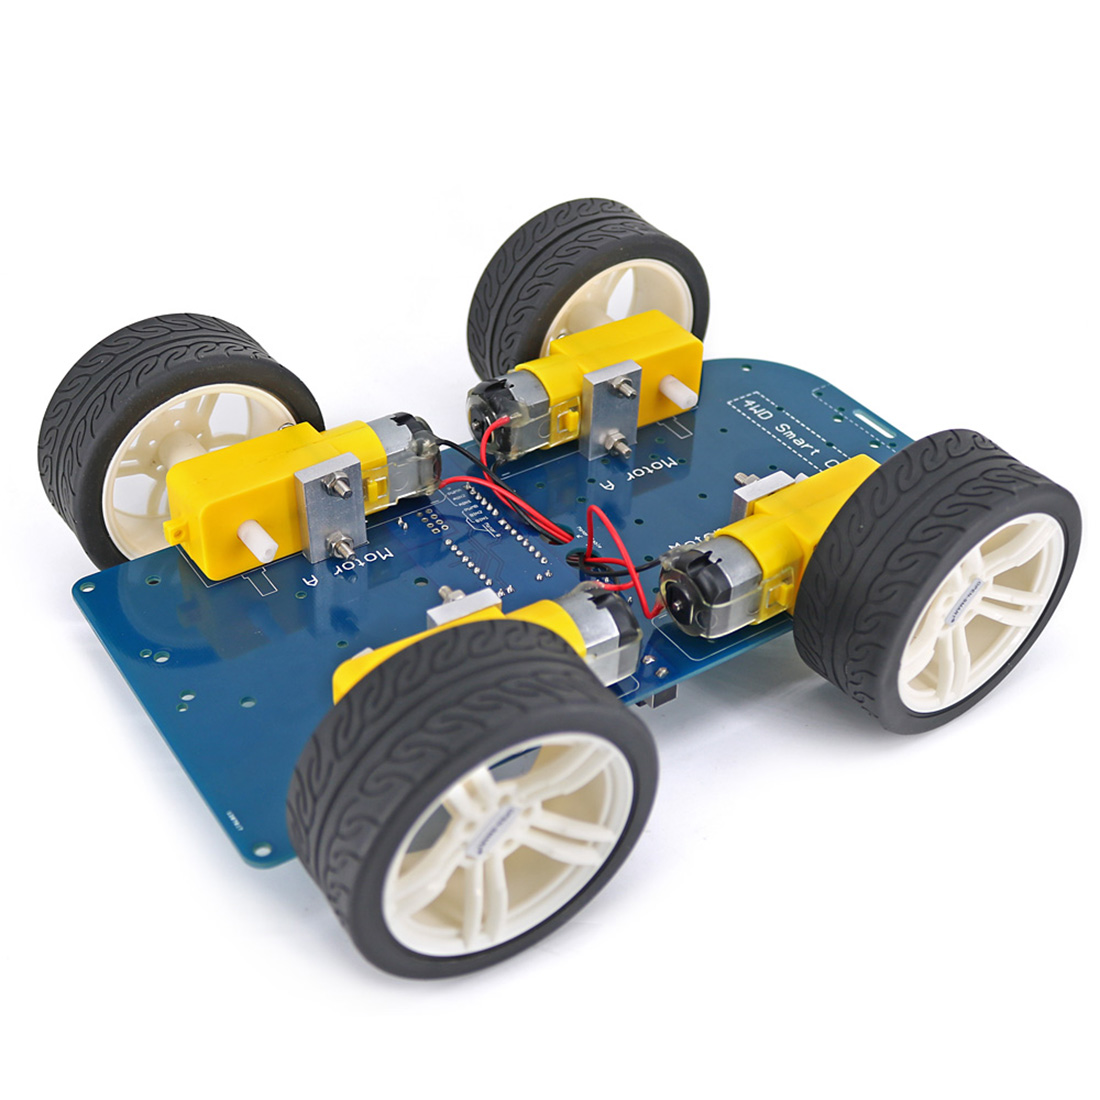 Disassembled Four-wheel Drive Bluetooth Intelligent Chassis Programmable Kit For Arduino For UNO R3 Nano Smart Underpan Suite